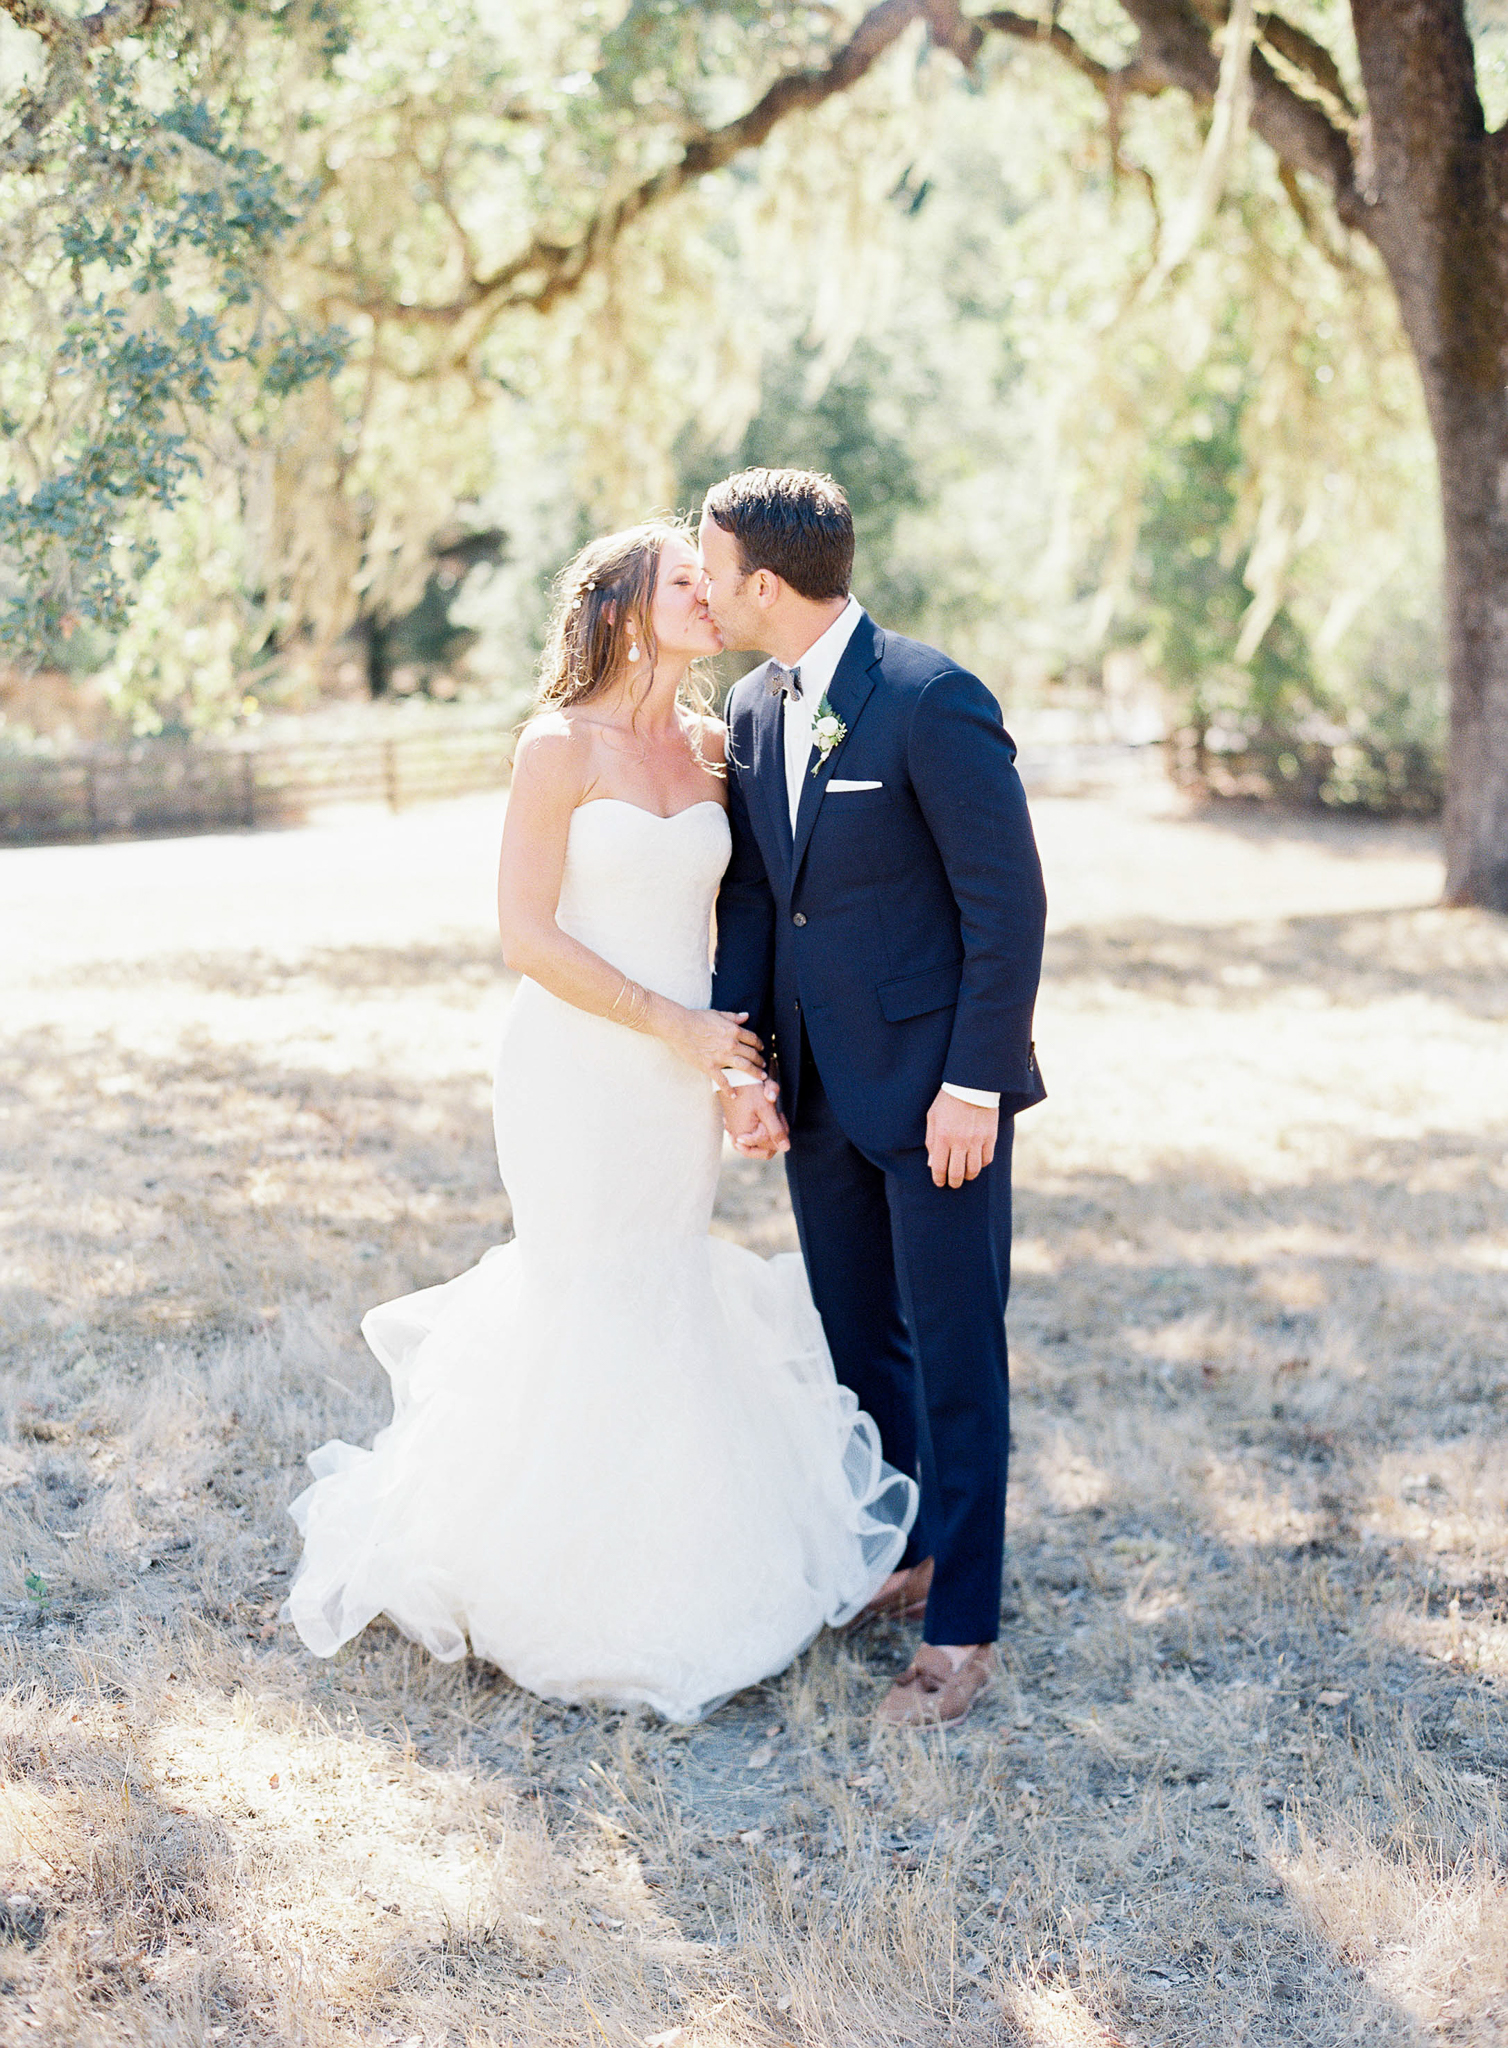 Meghan Mehan Photography - Fine Art Film Wedding Photography - San Francisco | Napa | Sonoma | Big Sur | Chicago | Minneapolis | Milwaukee | Lake Geneva | Door County | Wisconsin 049.jpg